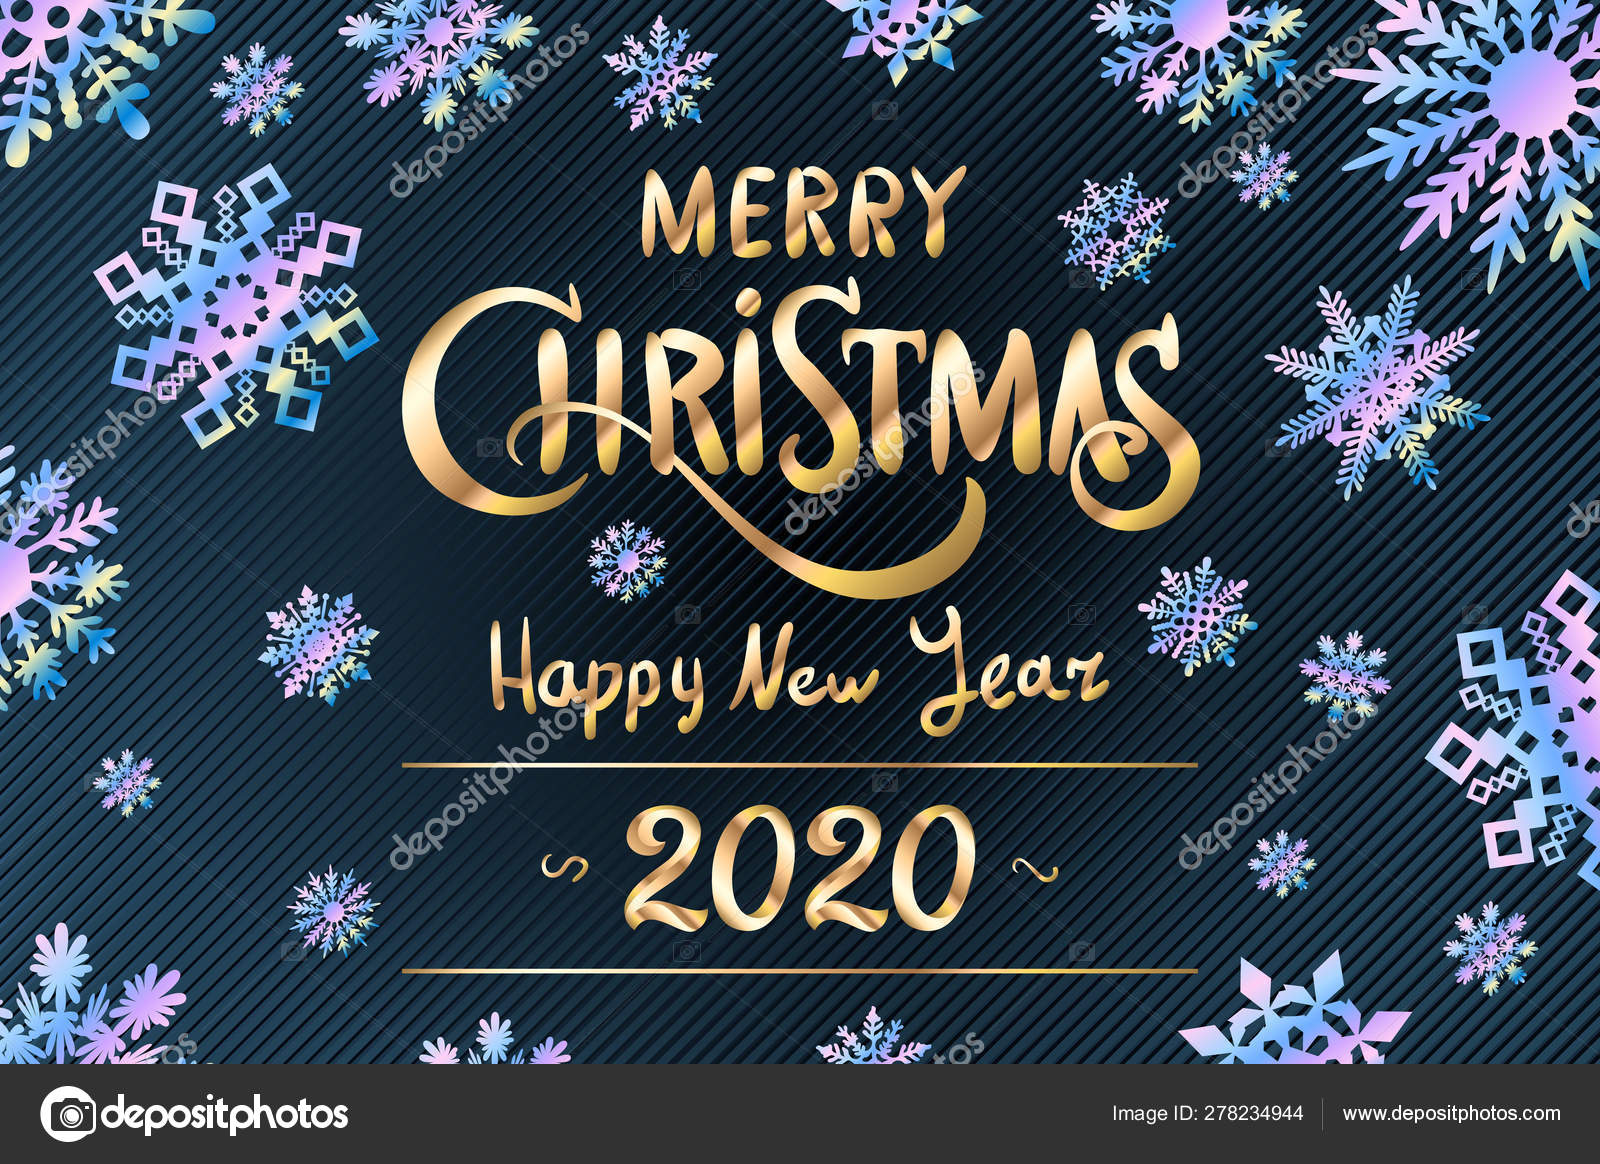 Merry Christmas and Happy New Year 2020 lettering template. Greeting card invitation with blue snowflakes. Winter holidays related typographic ...